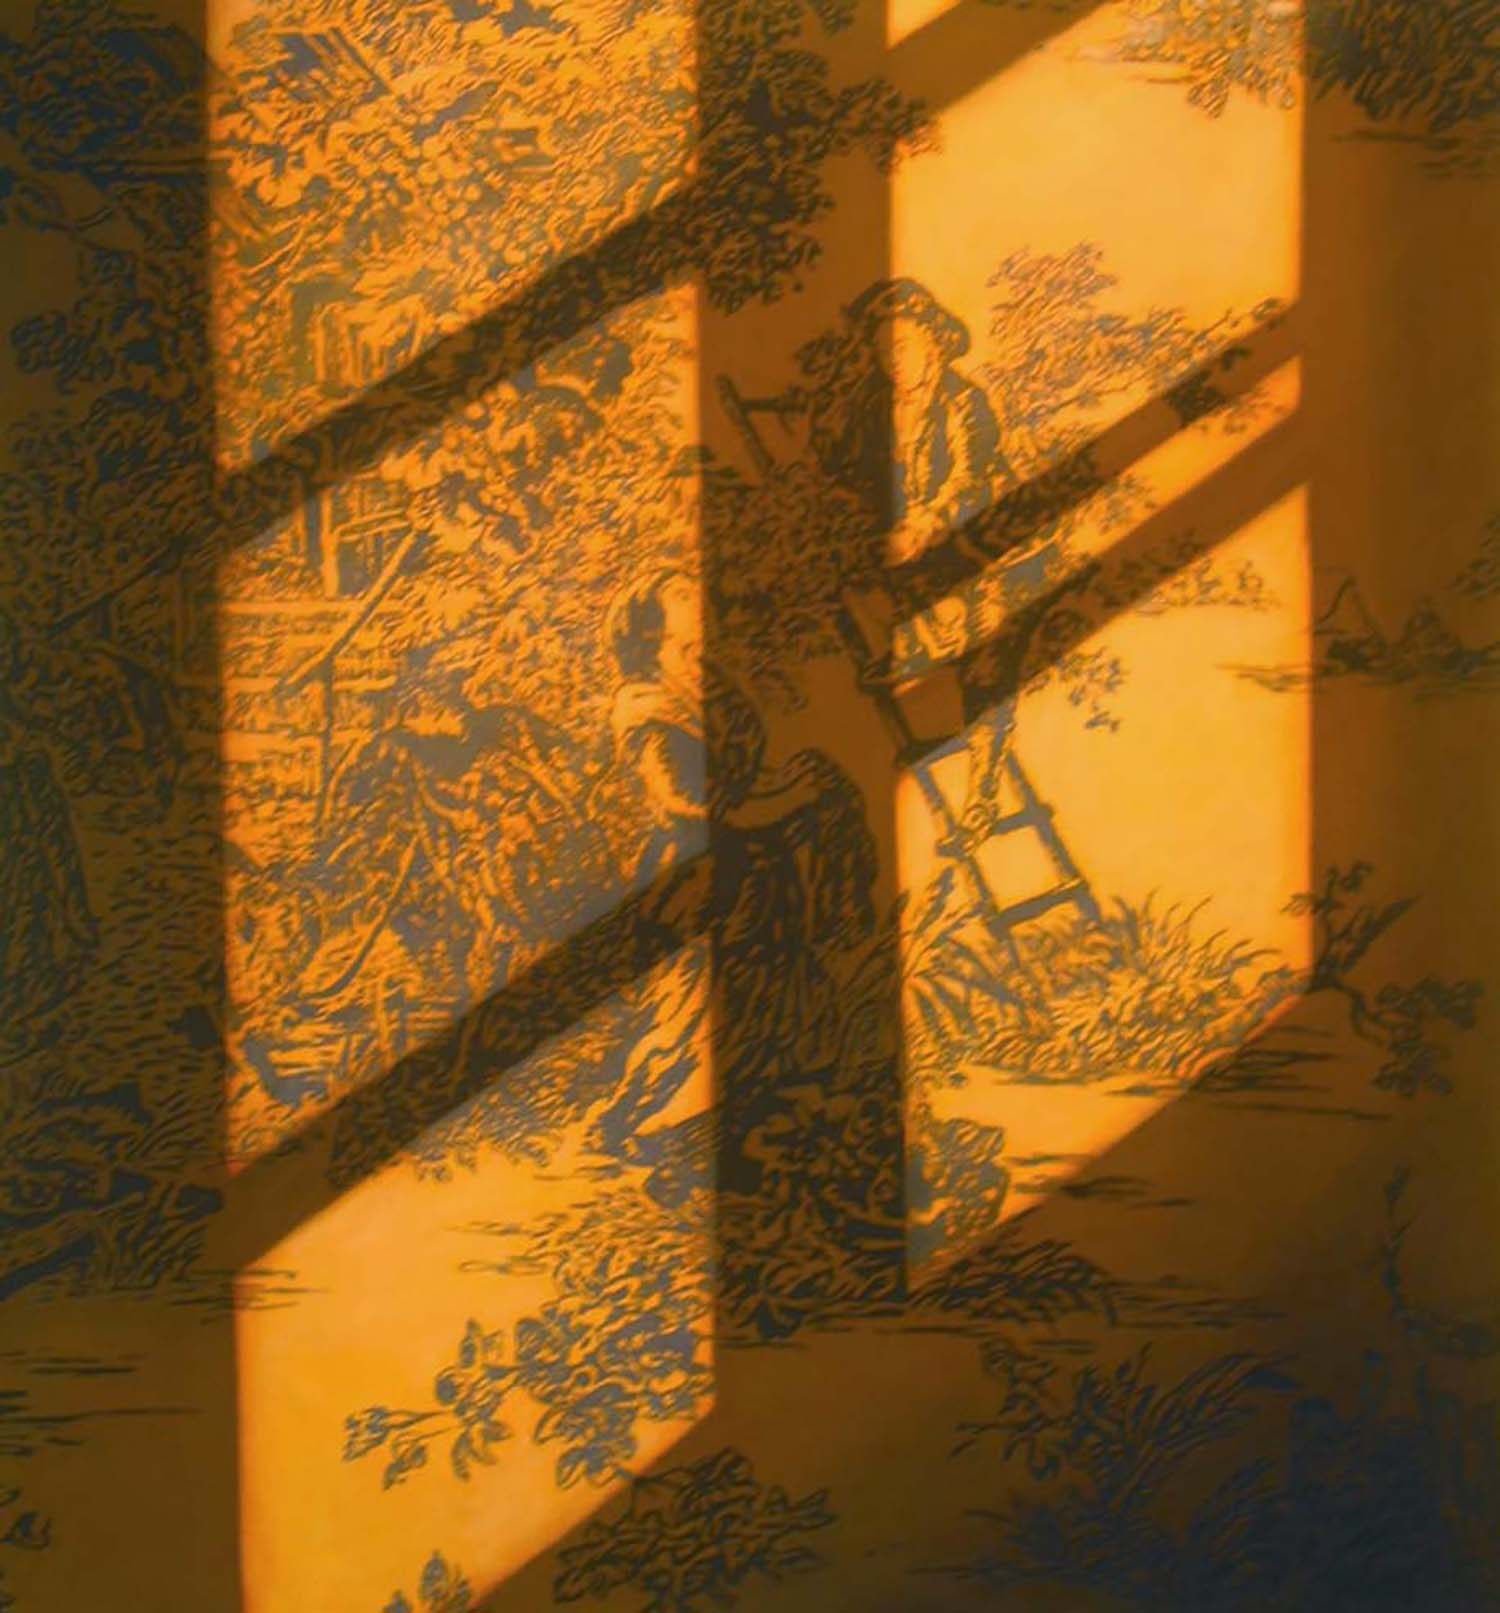 Sunlight on Toile   2004  Oil on canvas  72 x 66 inches